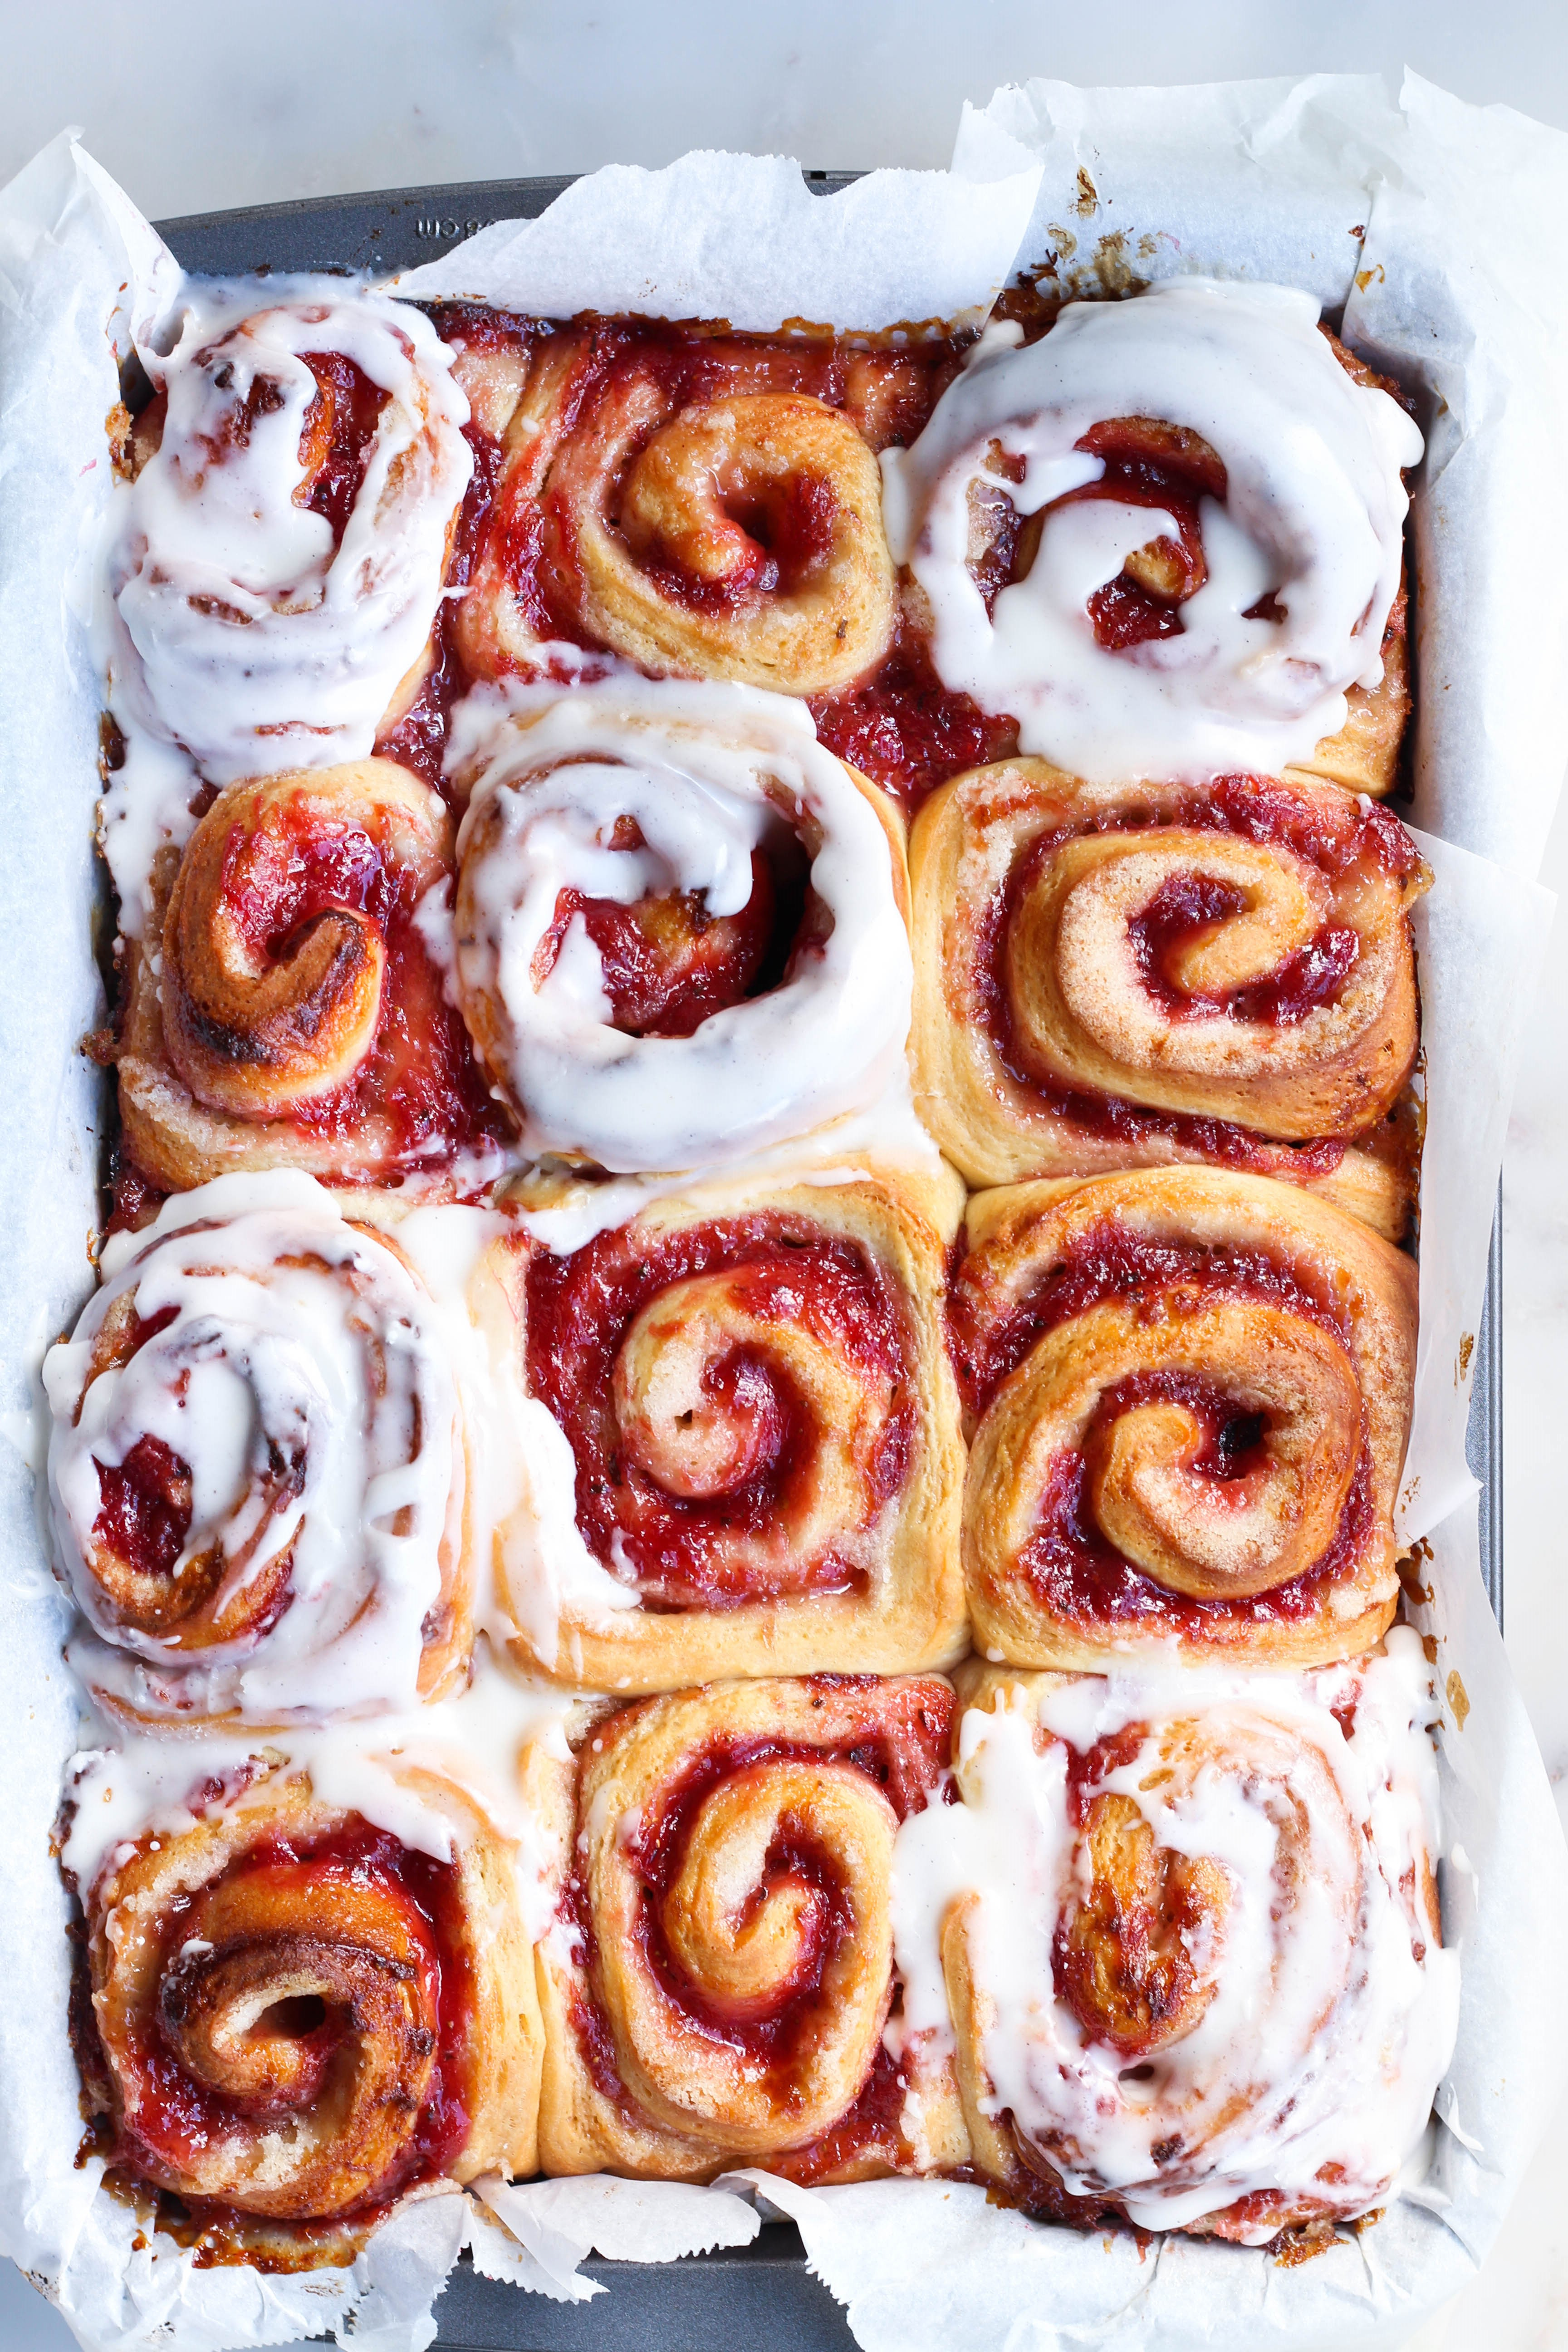 Simple Kitchen Blog cinnamon buns archives - the sweet and simple kitchen